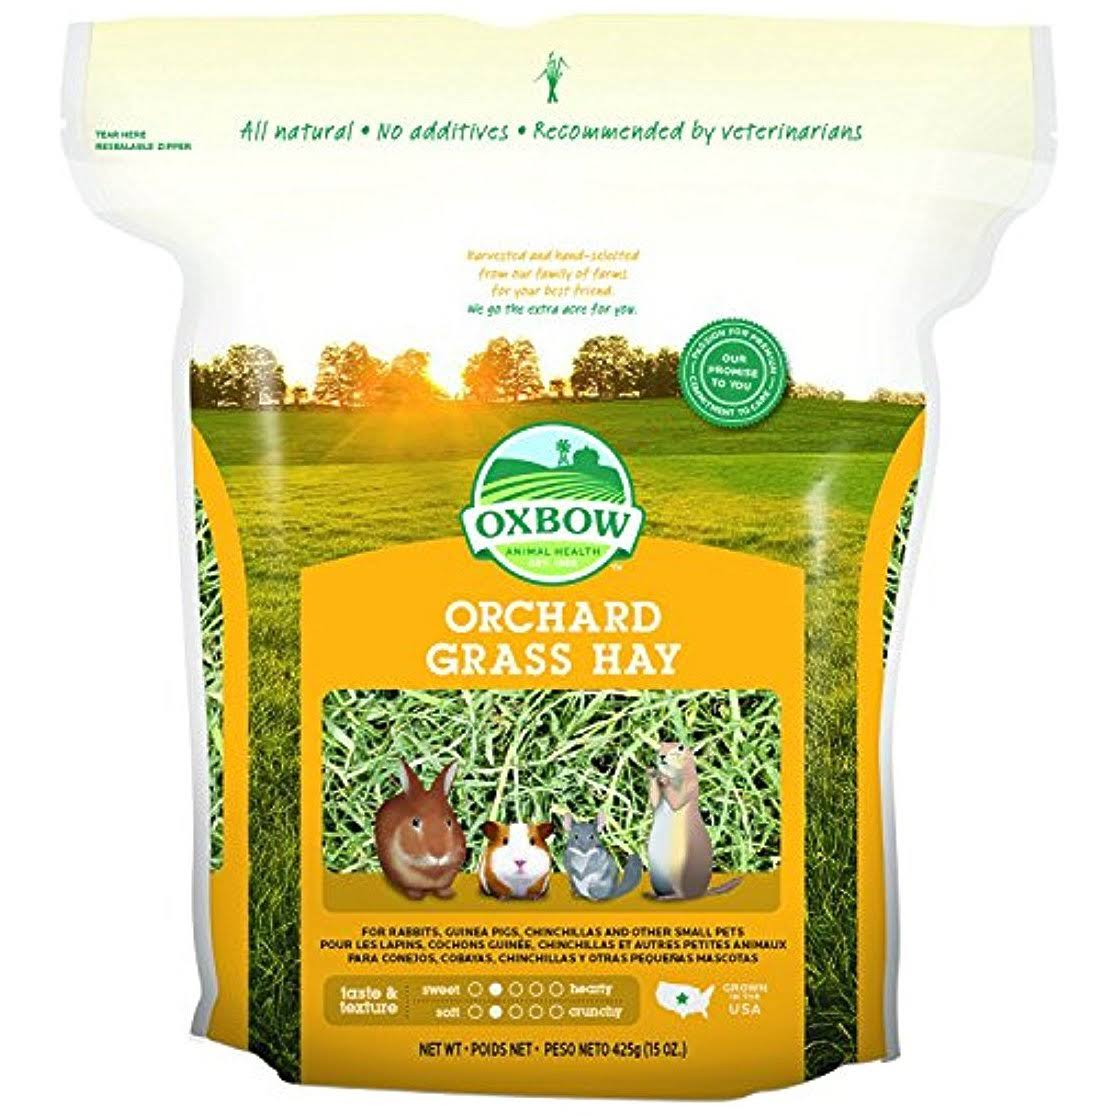 Oxbow Animal Health Orchard Grass Hay for Pets - 15oz